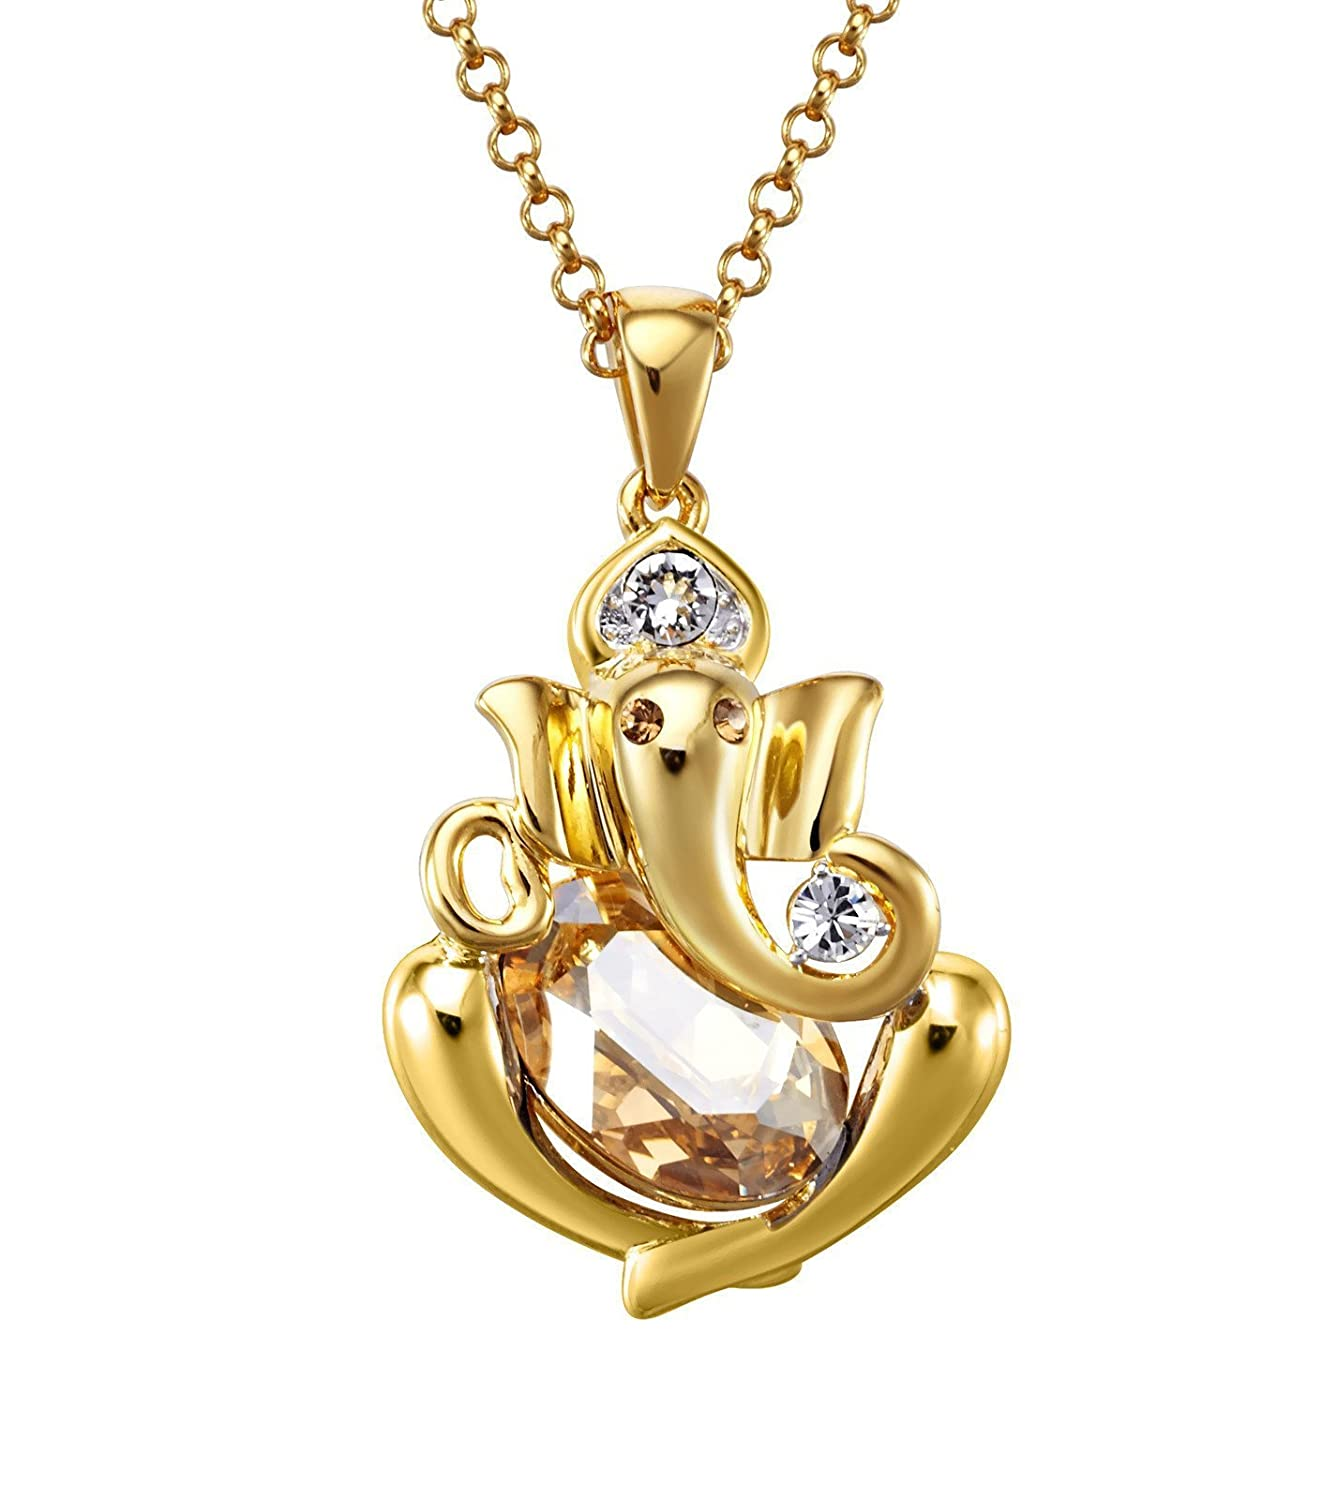 Nevi ganesha ganpati god swarovski crystals 18k yellow gold plated nevi ganesha ganpati god swarovski crystals 18k yellow gold plated princess unisex pendant necklace nevi amazon jewellery mozeypictures Gallery